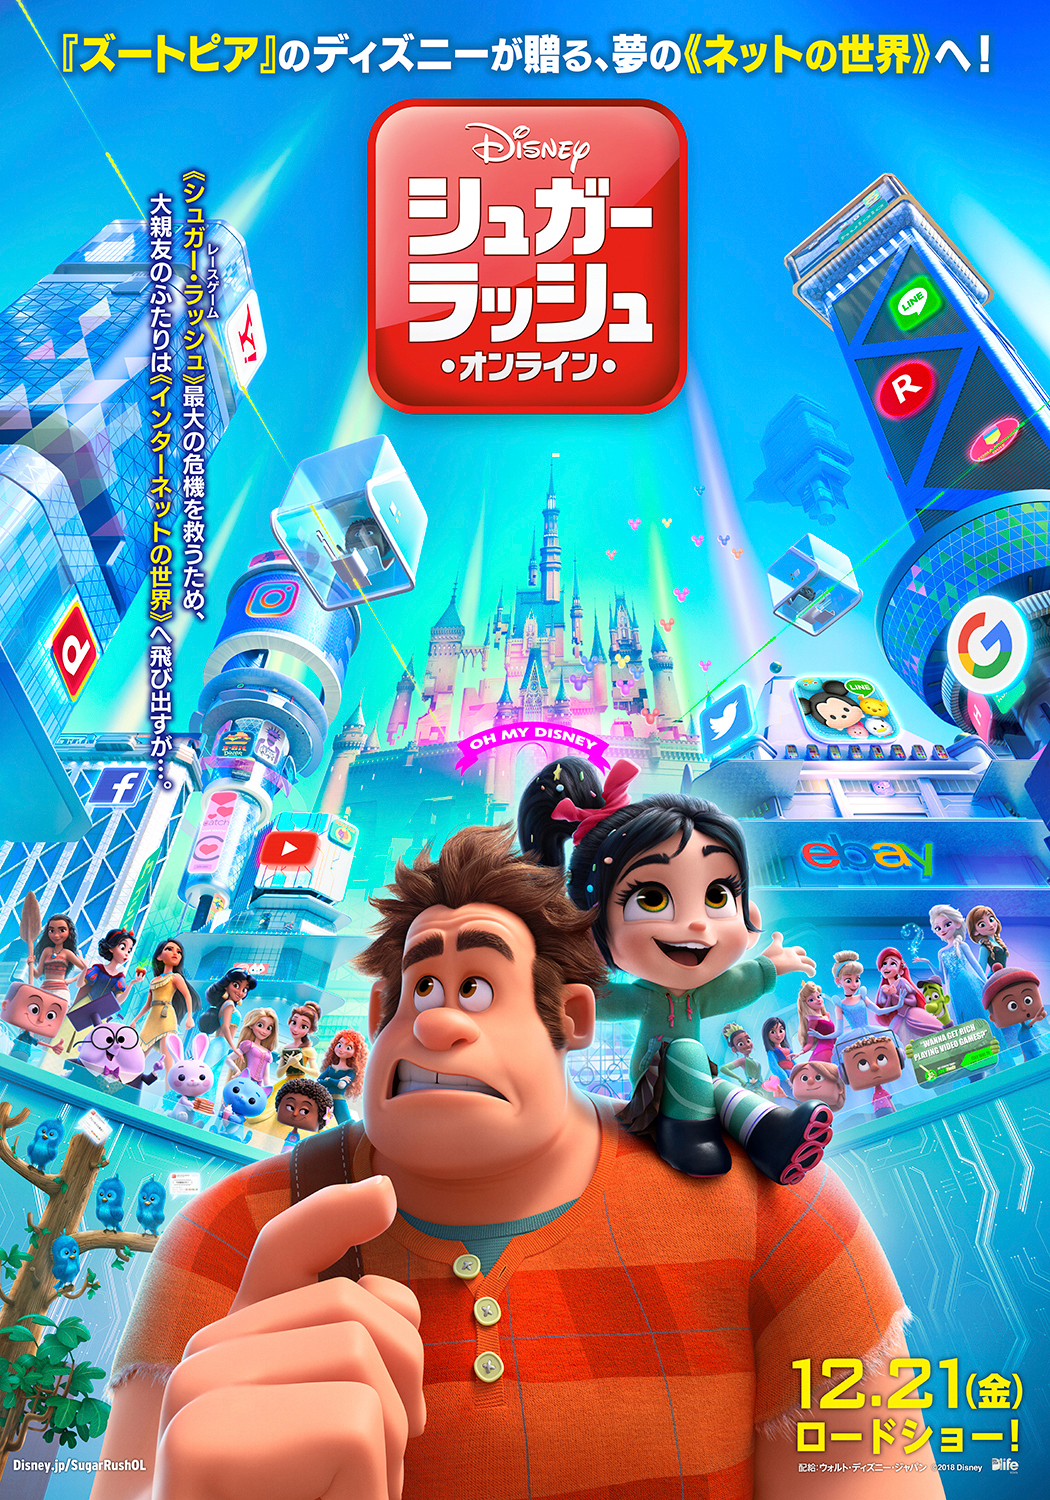 Ralph Breaks the Internet | Intl. Payoff Concept, Finishing & Illustration